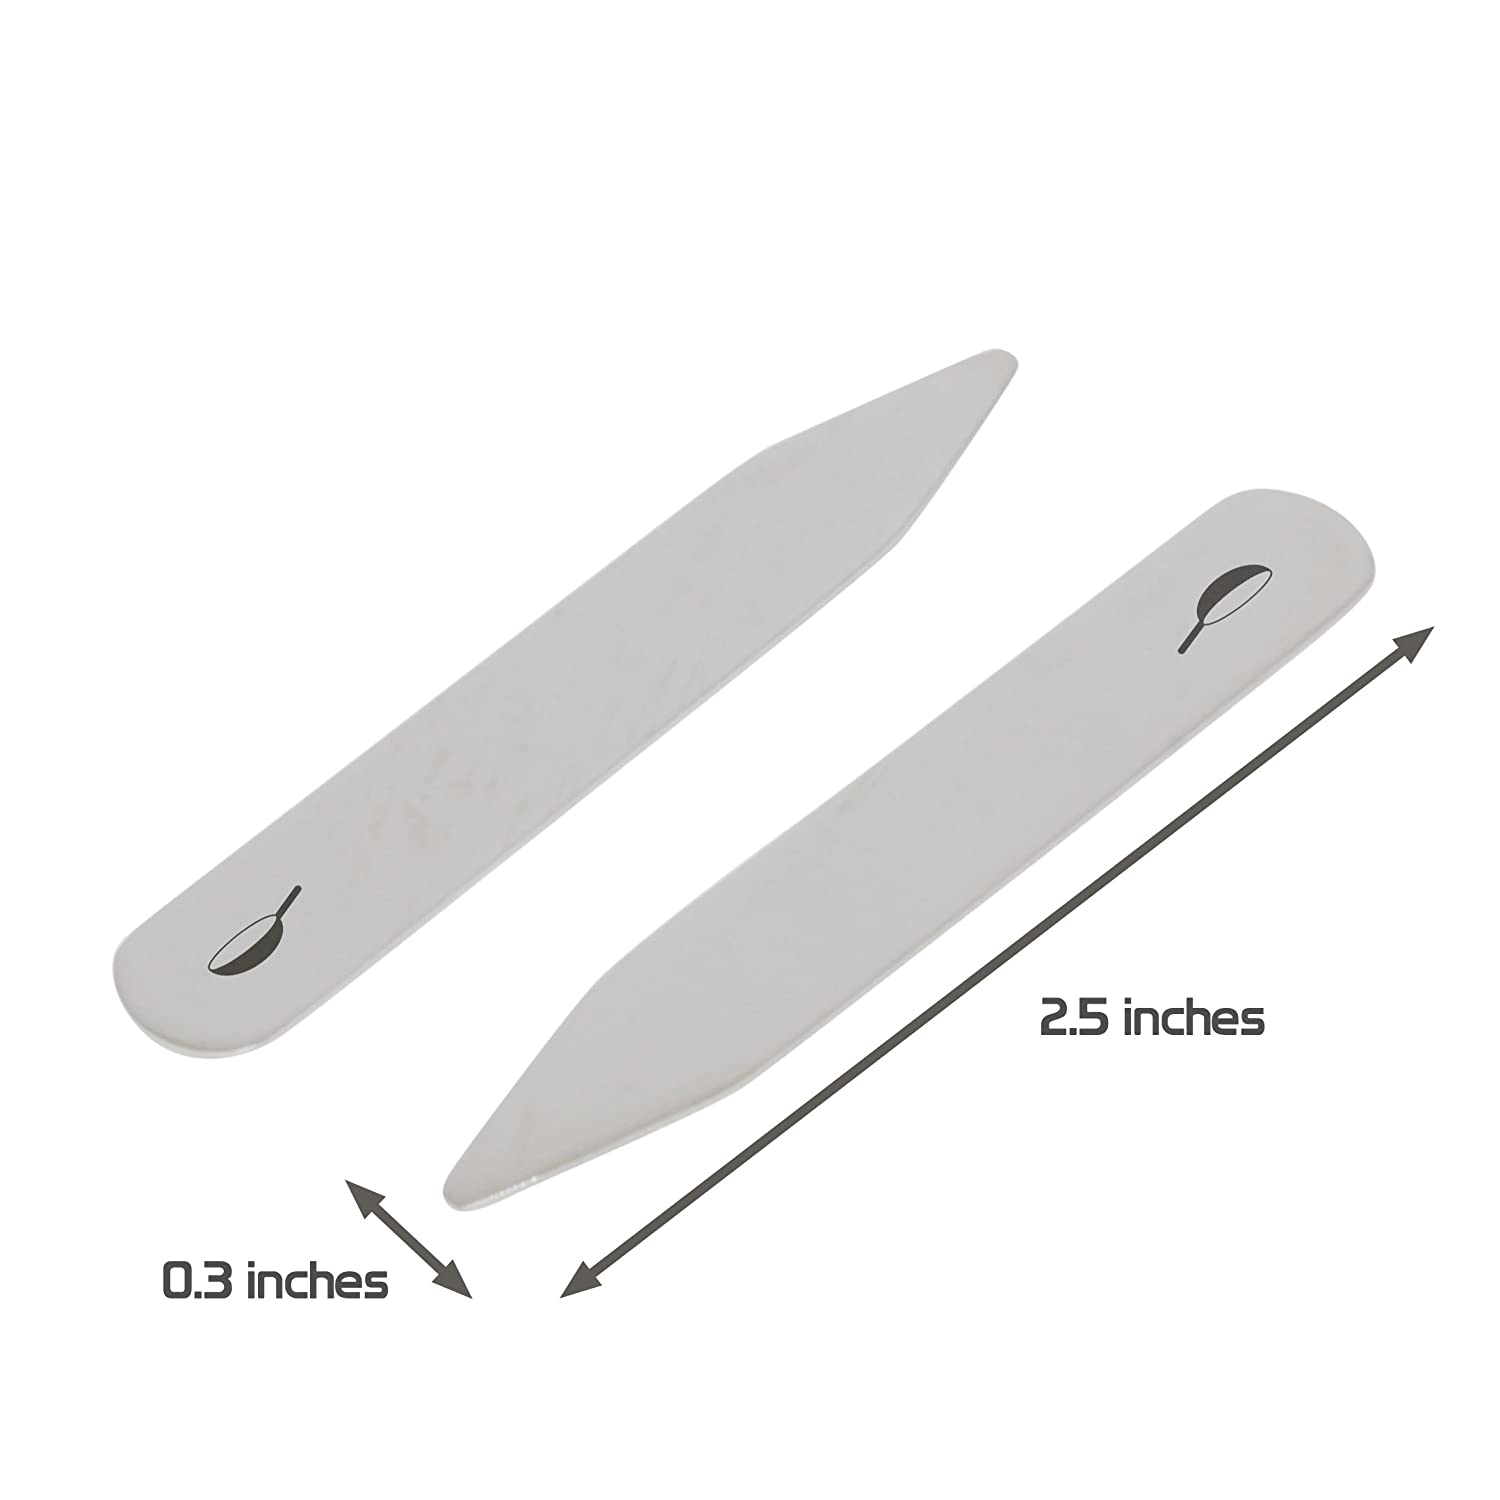 Made In USA MODERN GOODS SHOP Stainless Steel Collar Stays With Laser Engraved Pan Design 2.5 Inch Metal Collar Stiffeners